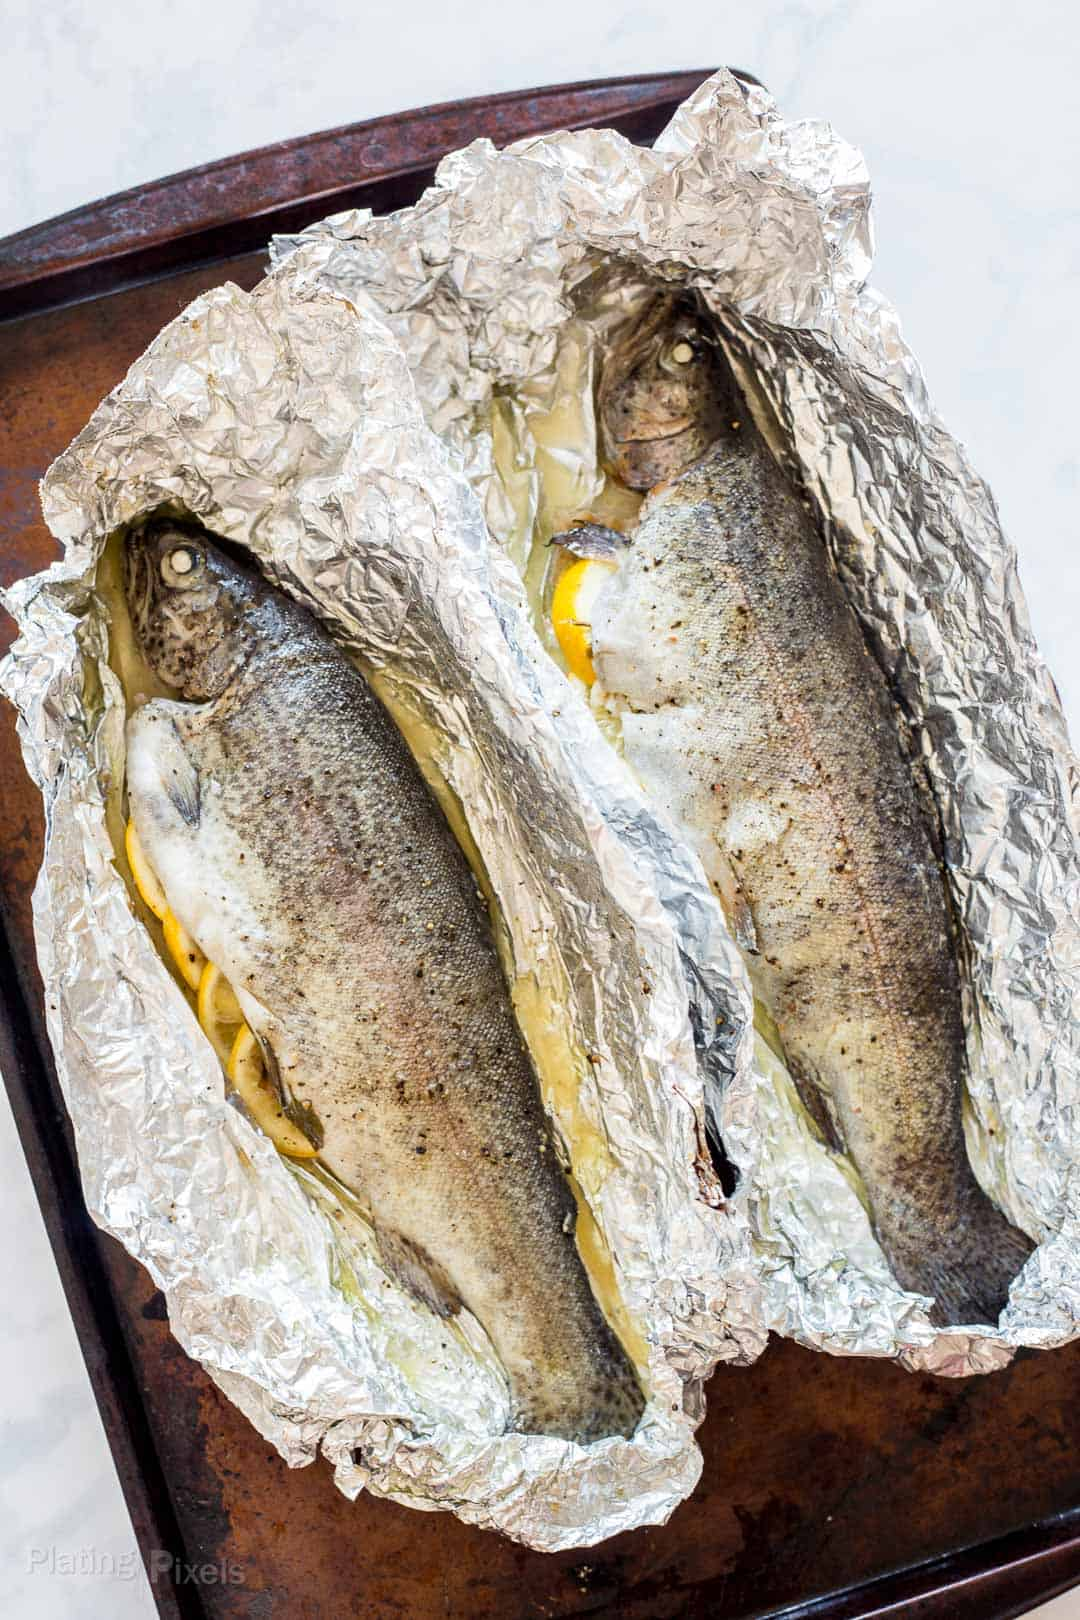 Two oven baked trouts on foil on a baking sheet